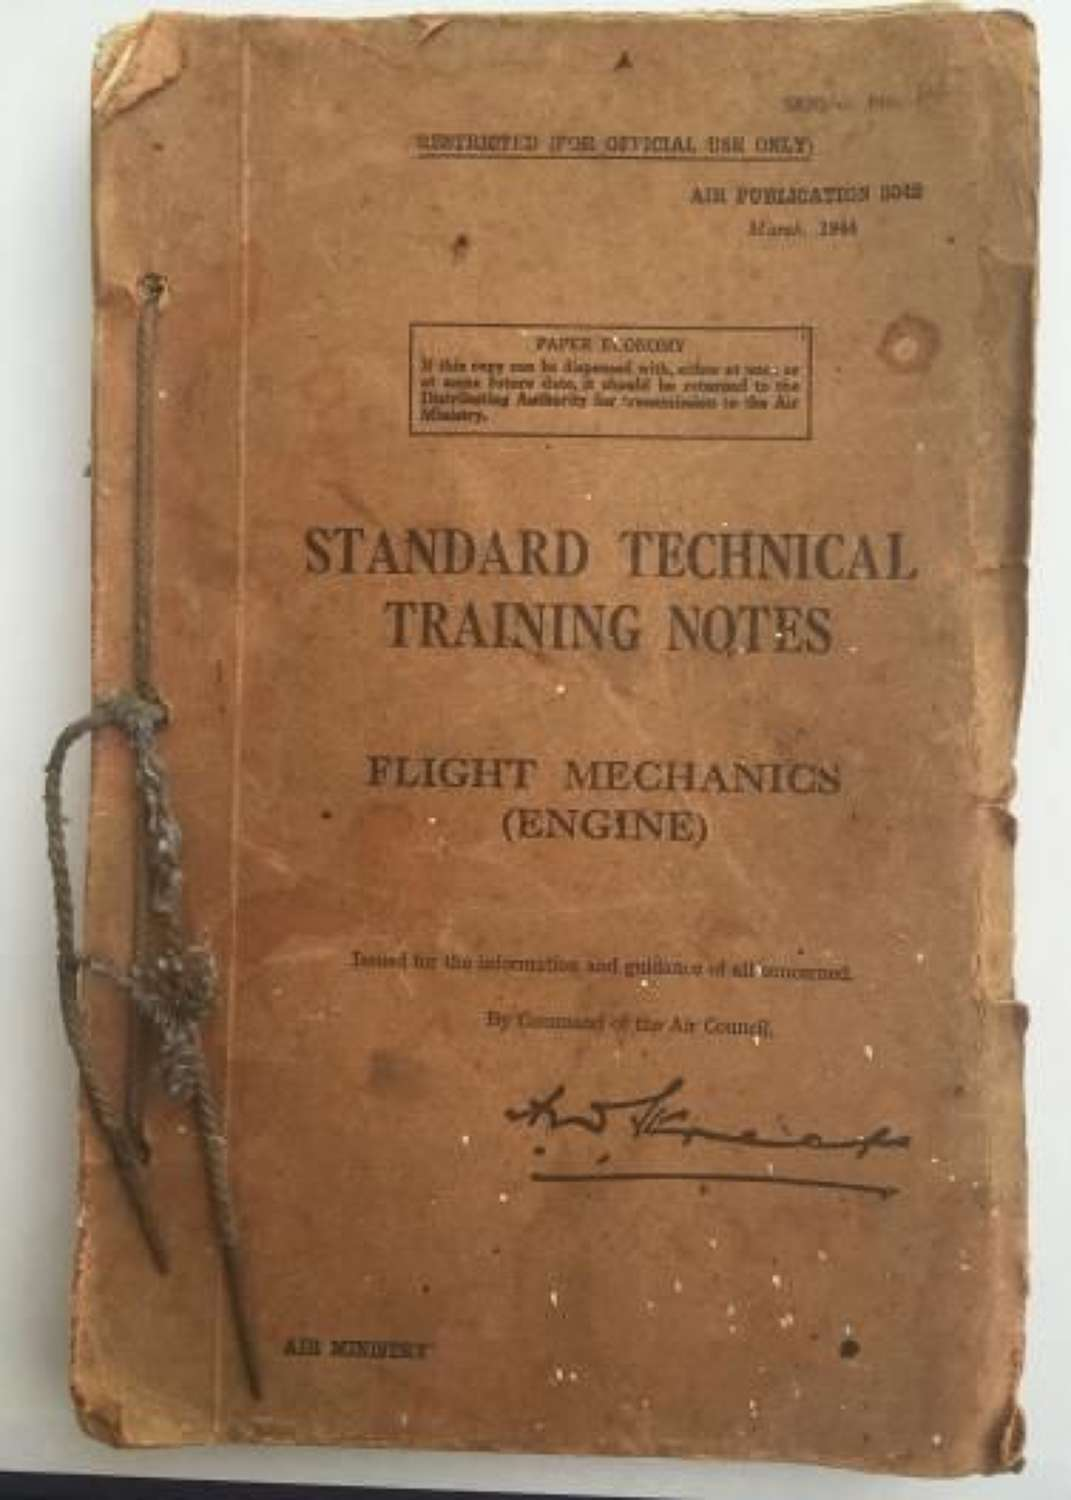 RAF Standard Technical Training Notes, Flight Mechanic, Engine Dated 1